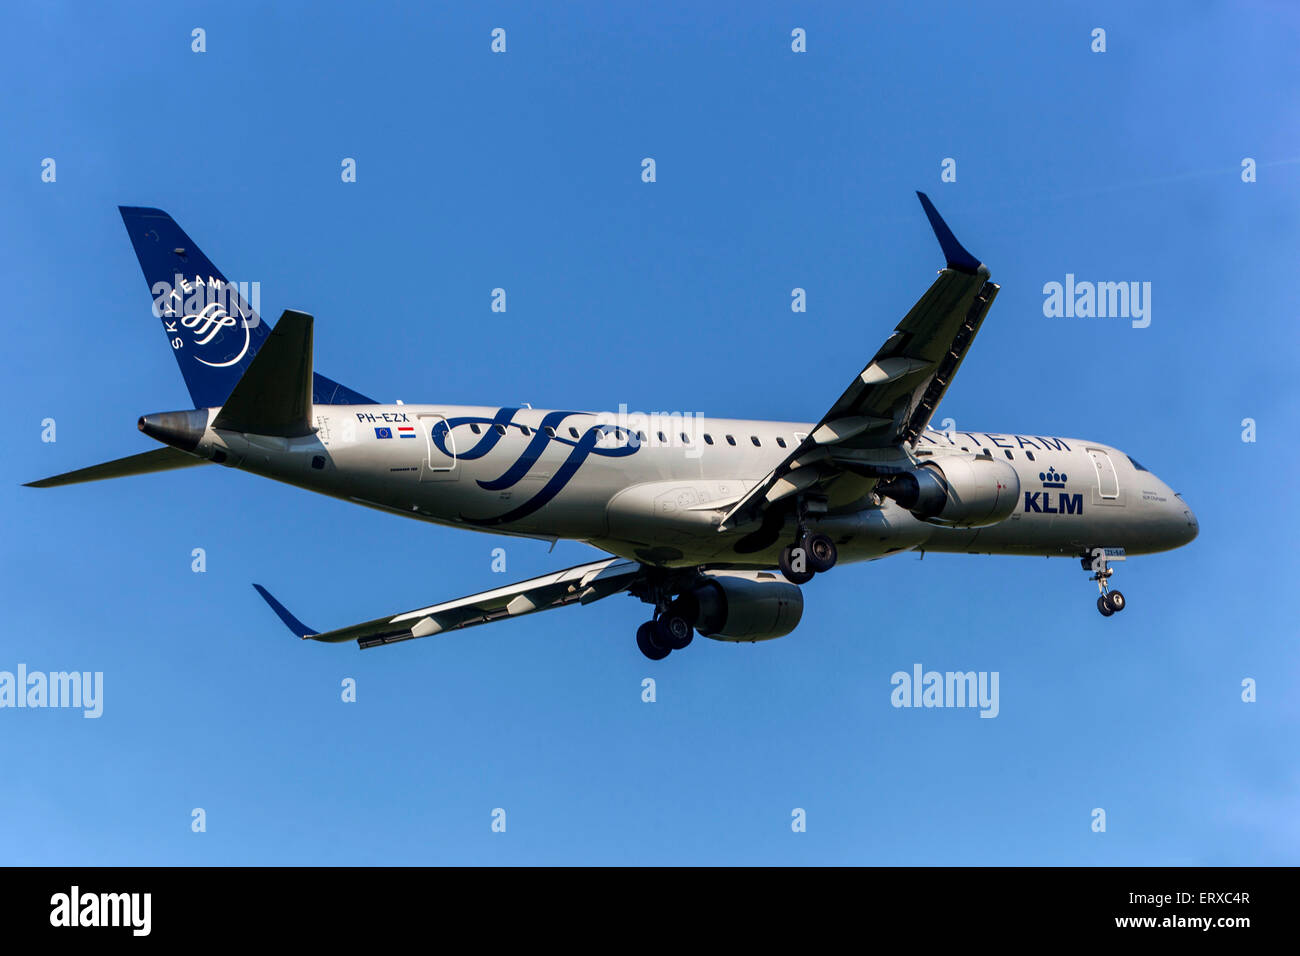 EMBRAER 190 operated by KLM CITYHOPPER on approach for landing Prague, Czech Republic - Stock Image